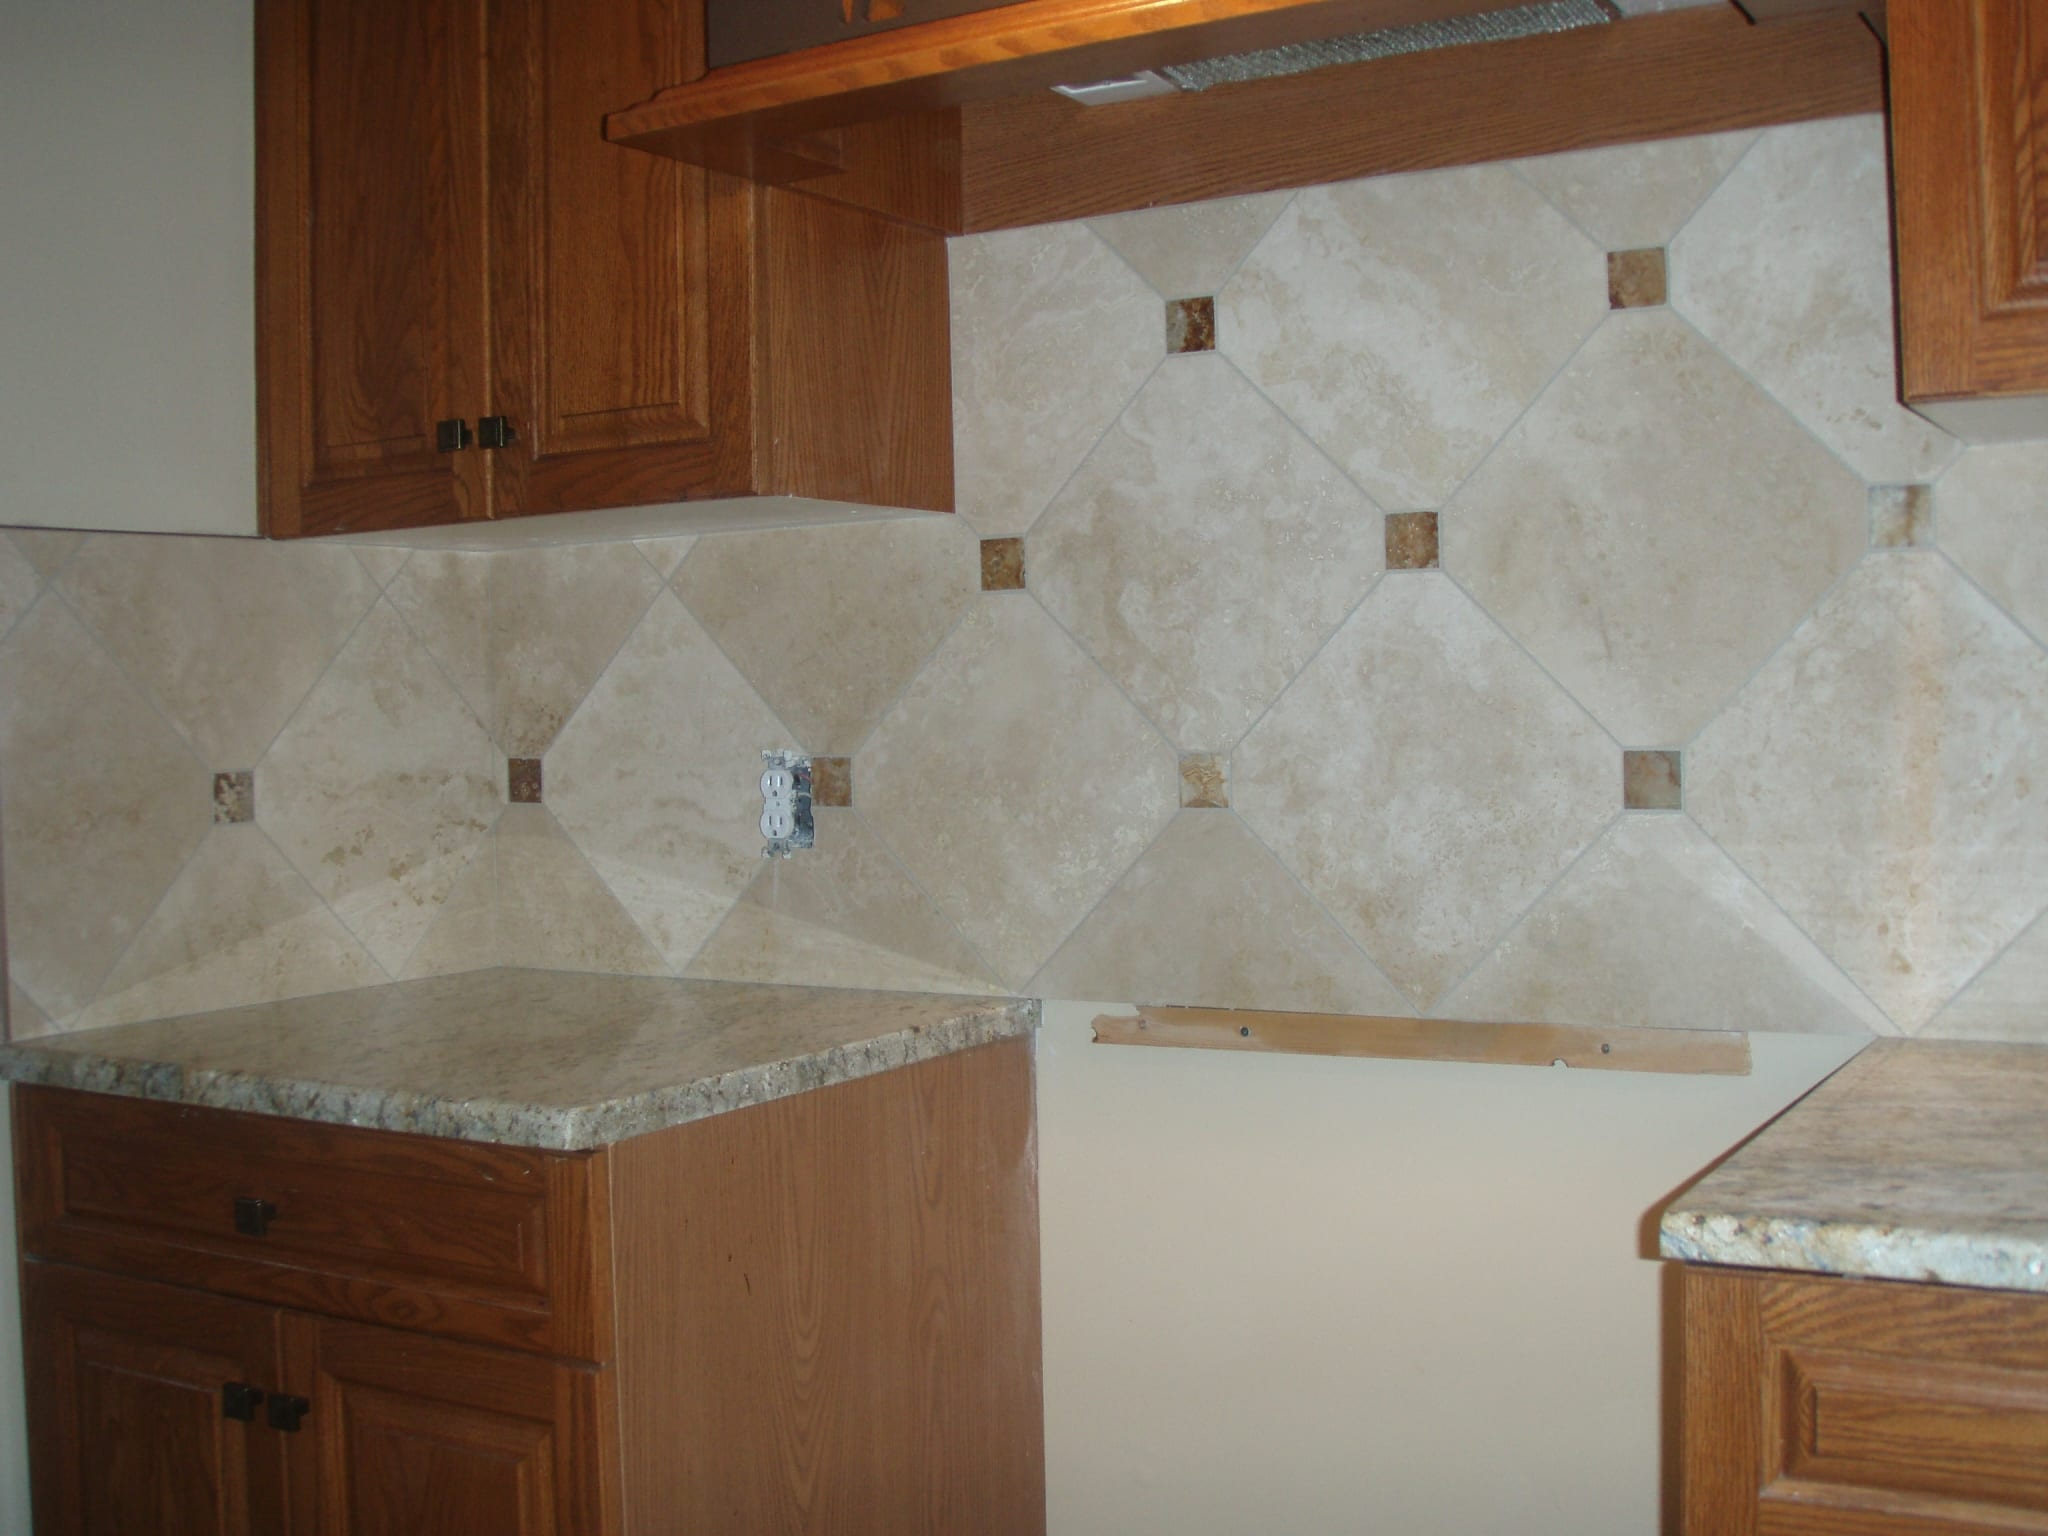 Marble wall tiles behind kitchen counter